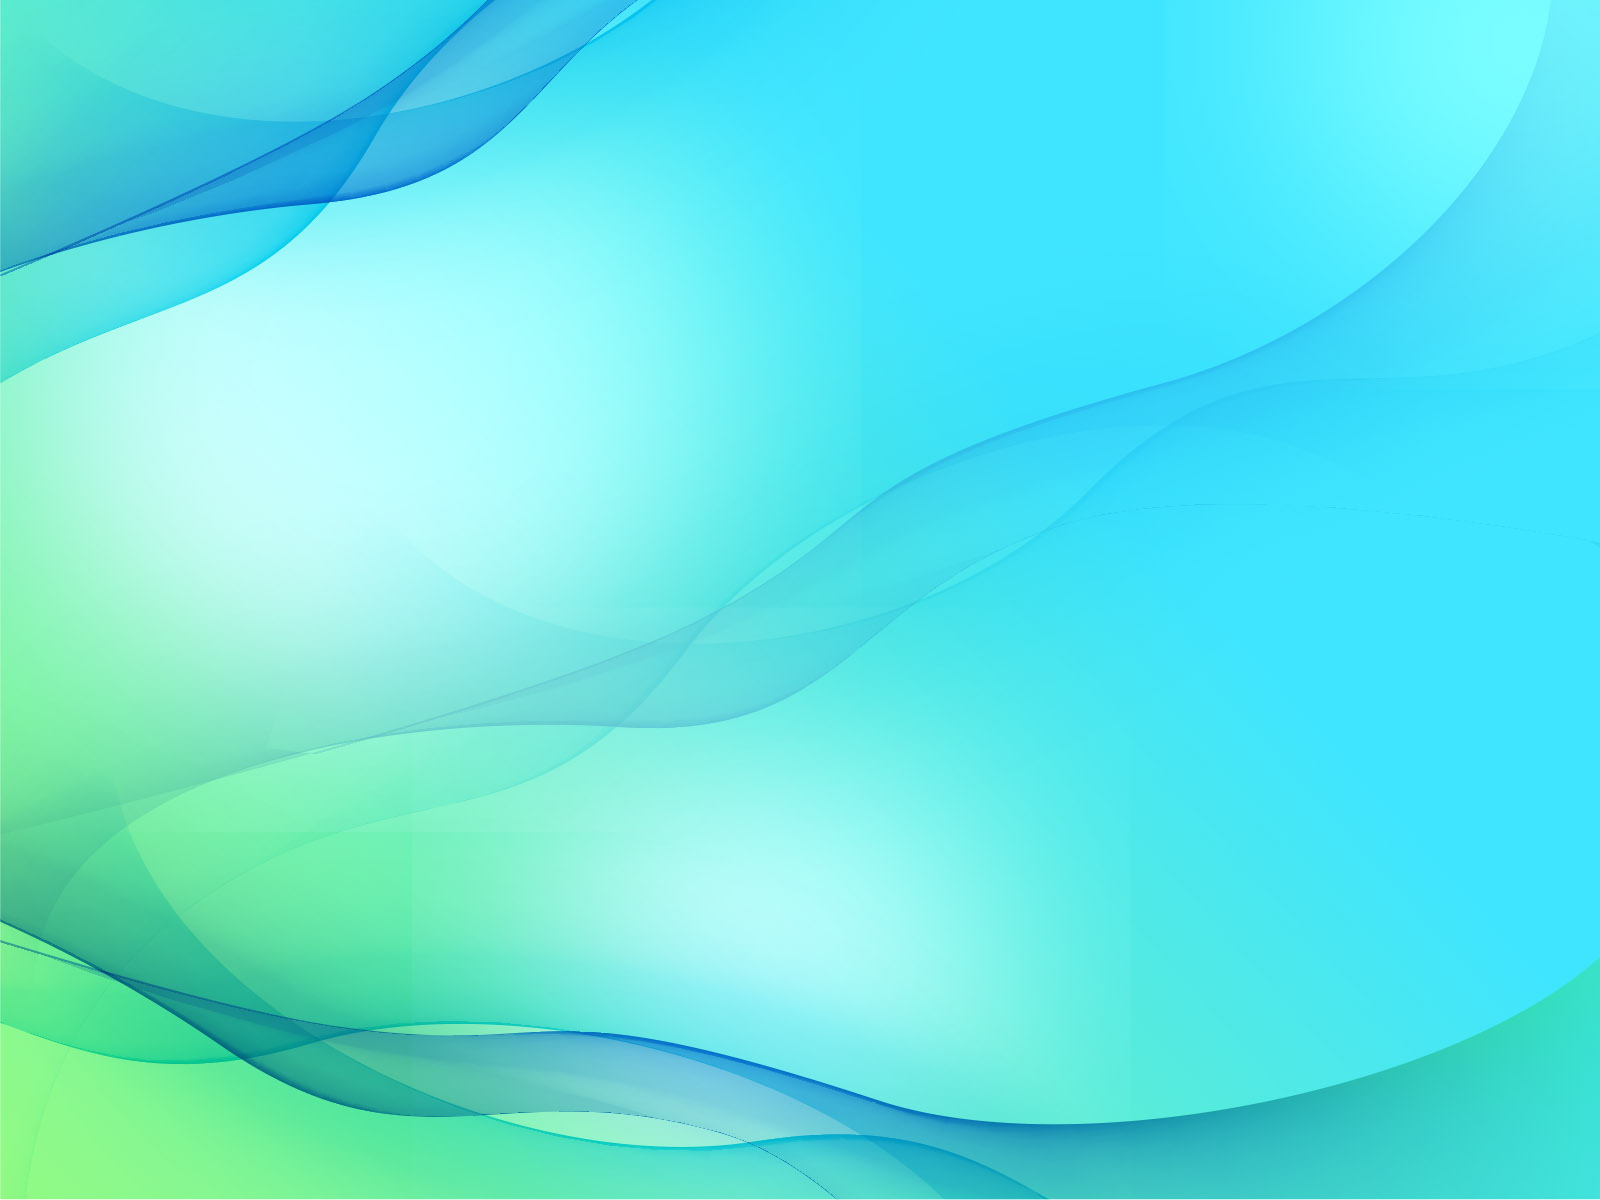 free slide templates - abstract smooth wave backgrounds abstract blue green